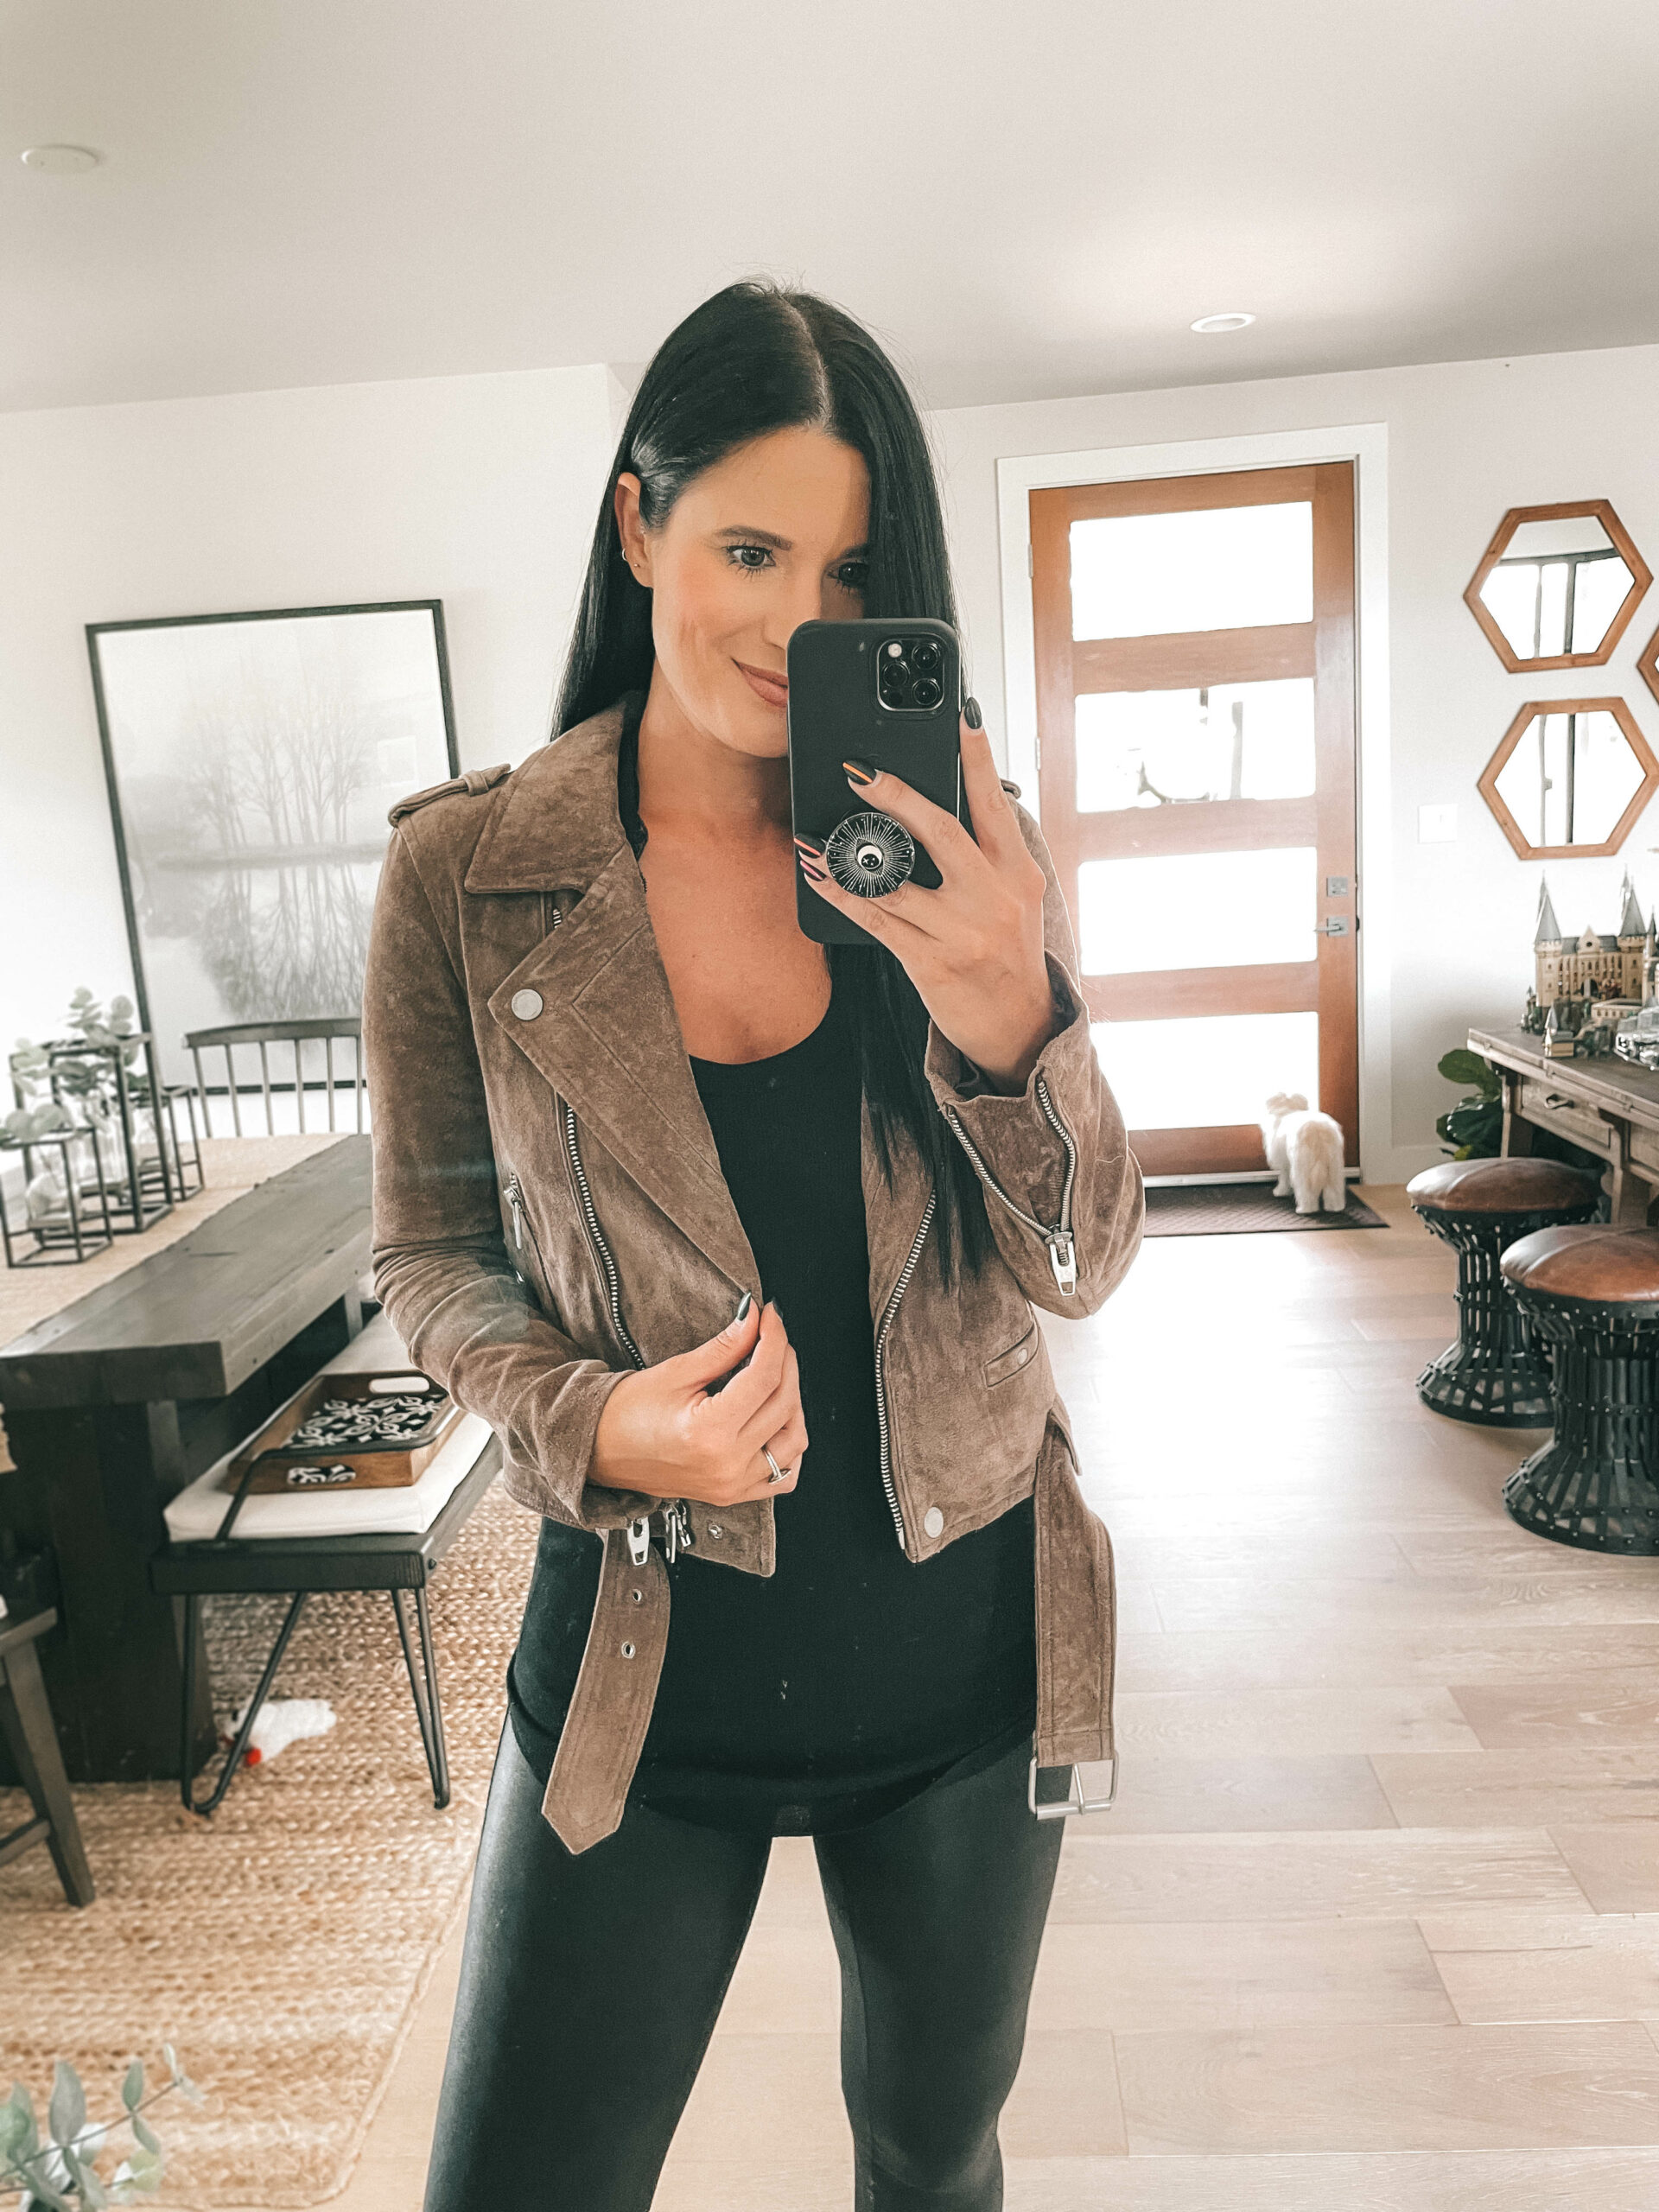 Nordstrom Anniversary Sale by popular Austin fashion blog, Dressed to Kill: image of a woman wearing a brown suede jacket, black top, and black faux leather leggings.